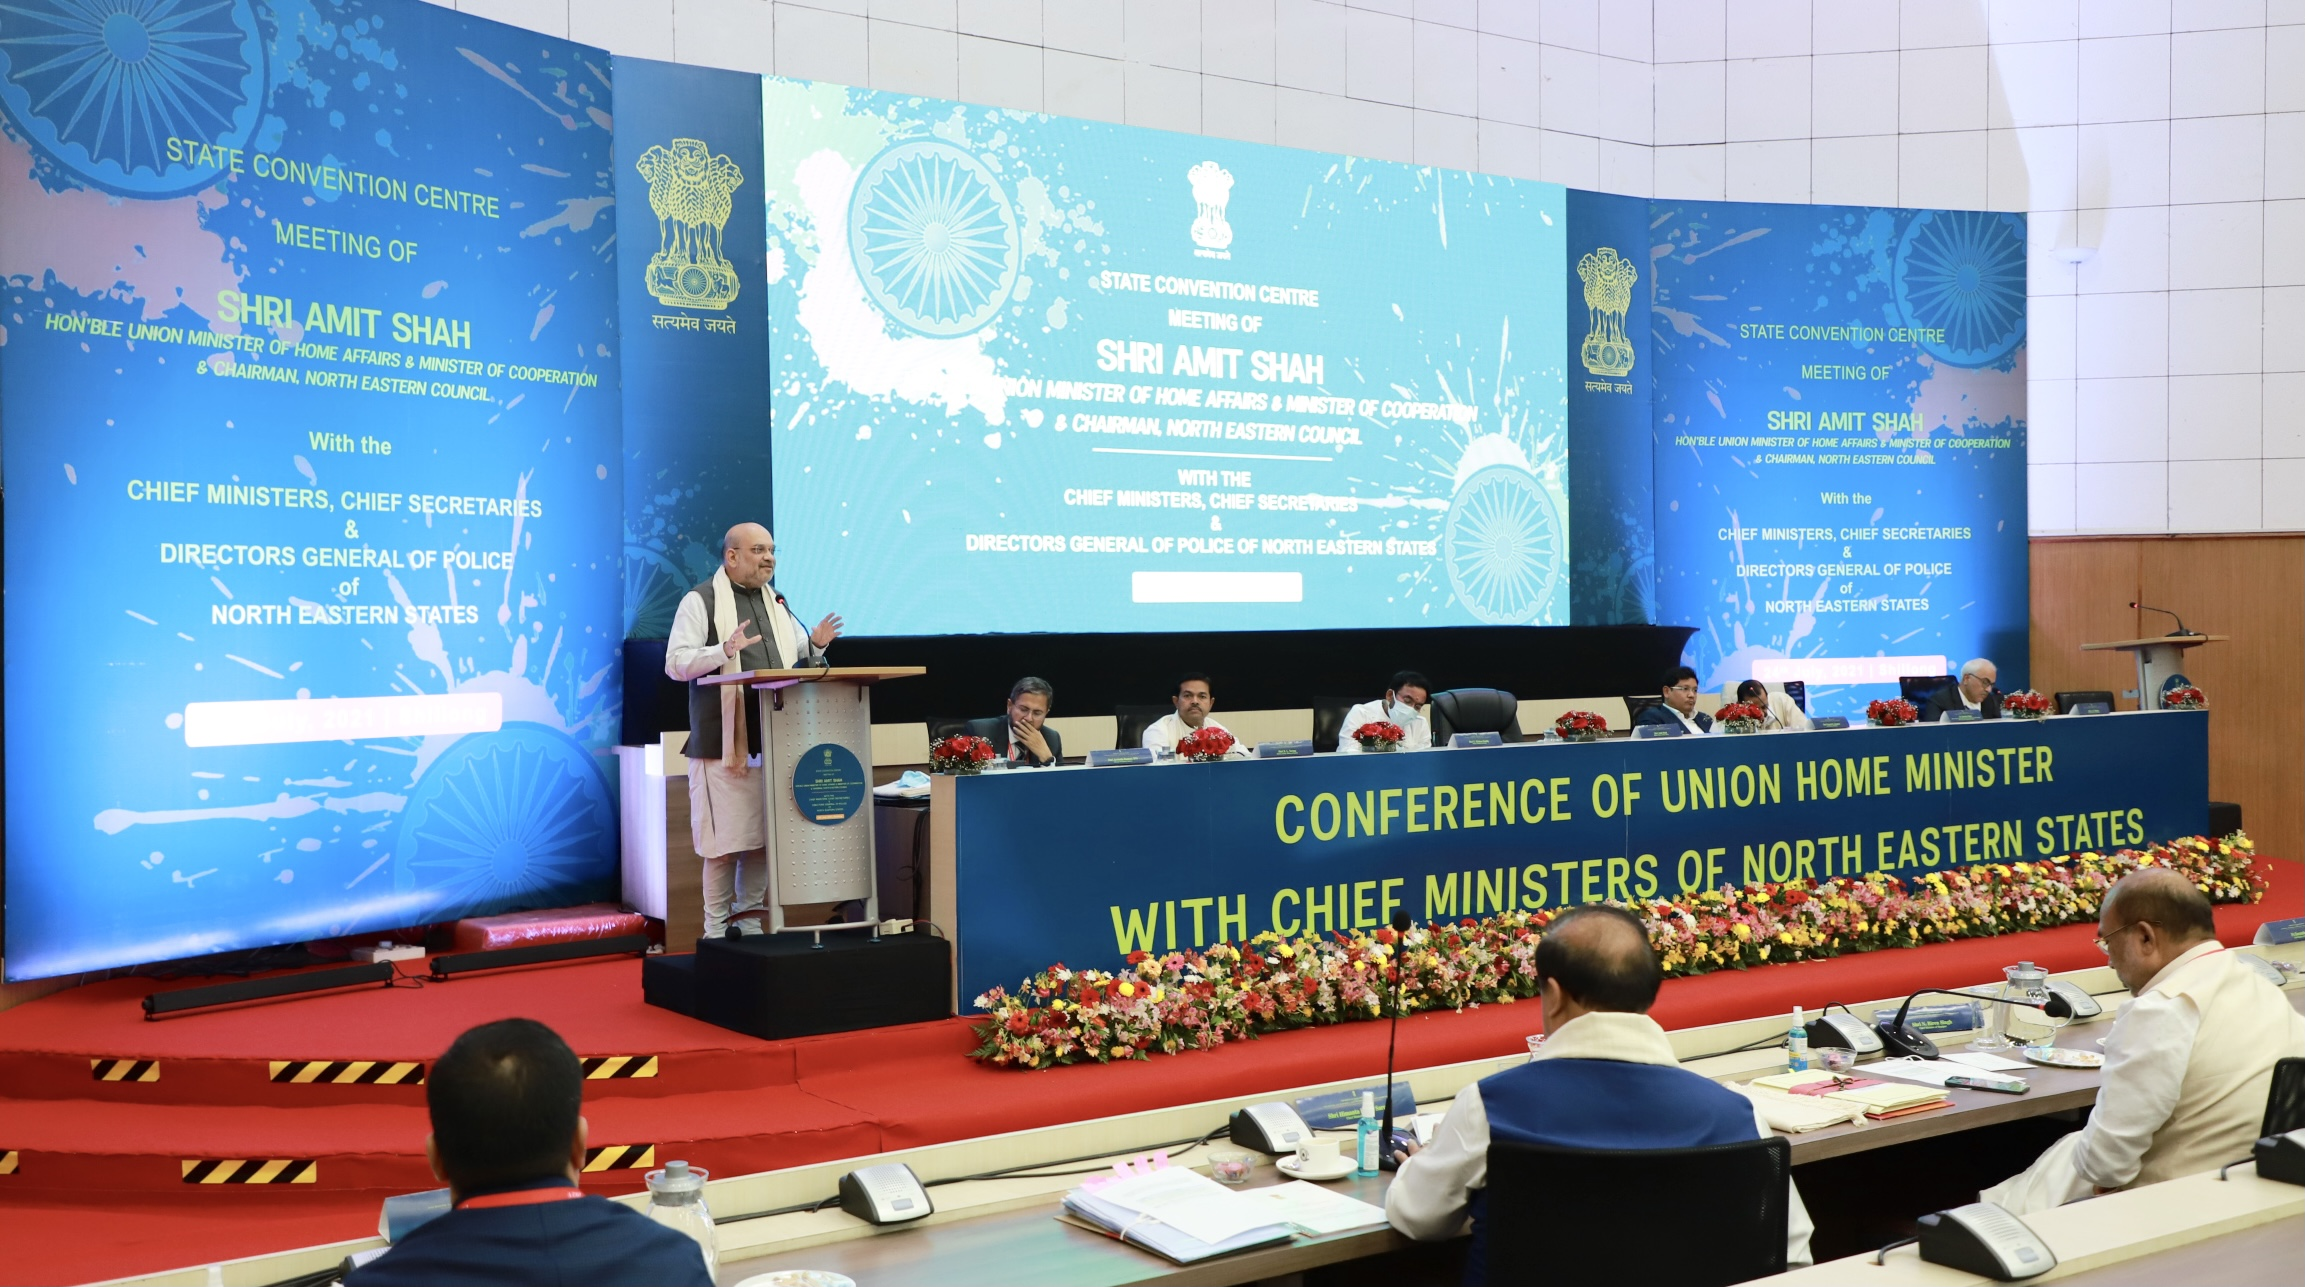 Union Home Minister Shri Amit Shah Addressed the conference with the Chief Ministers